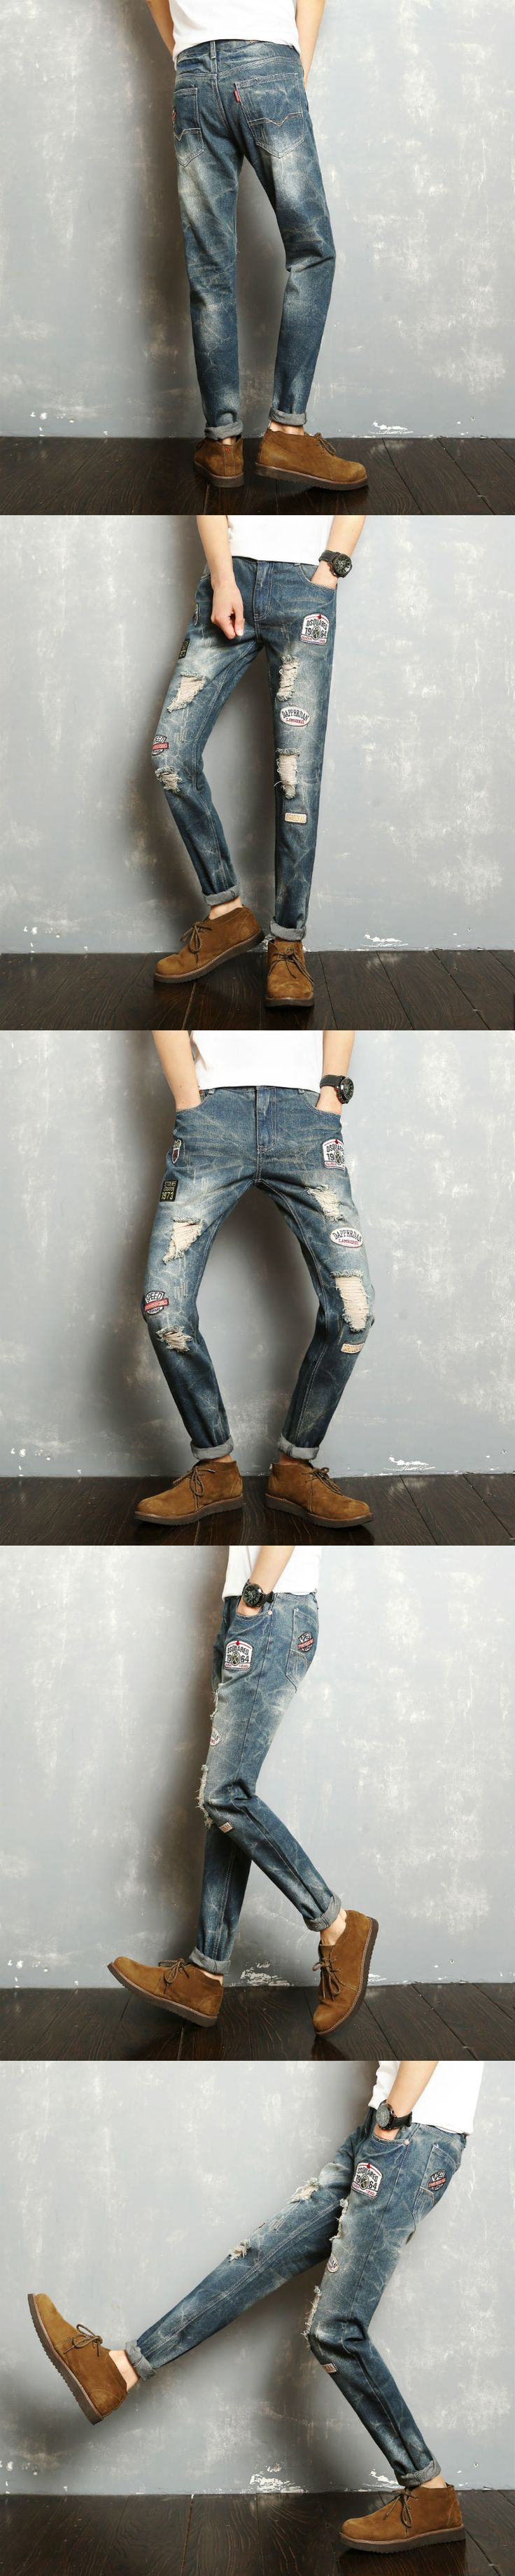 New 2017 spring hip pop style fashion patch embroidery and hole jeans men harem men jeans light blue jeans homme NZK1-3